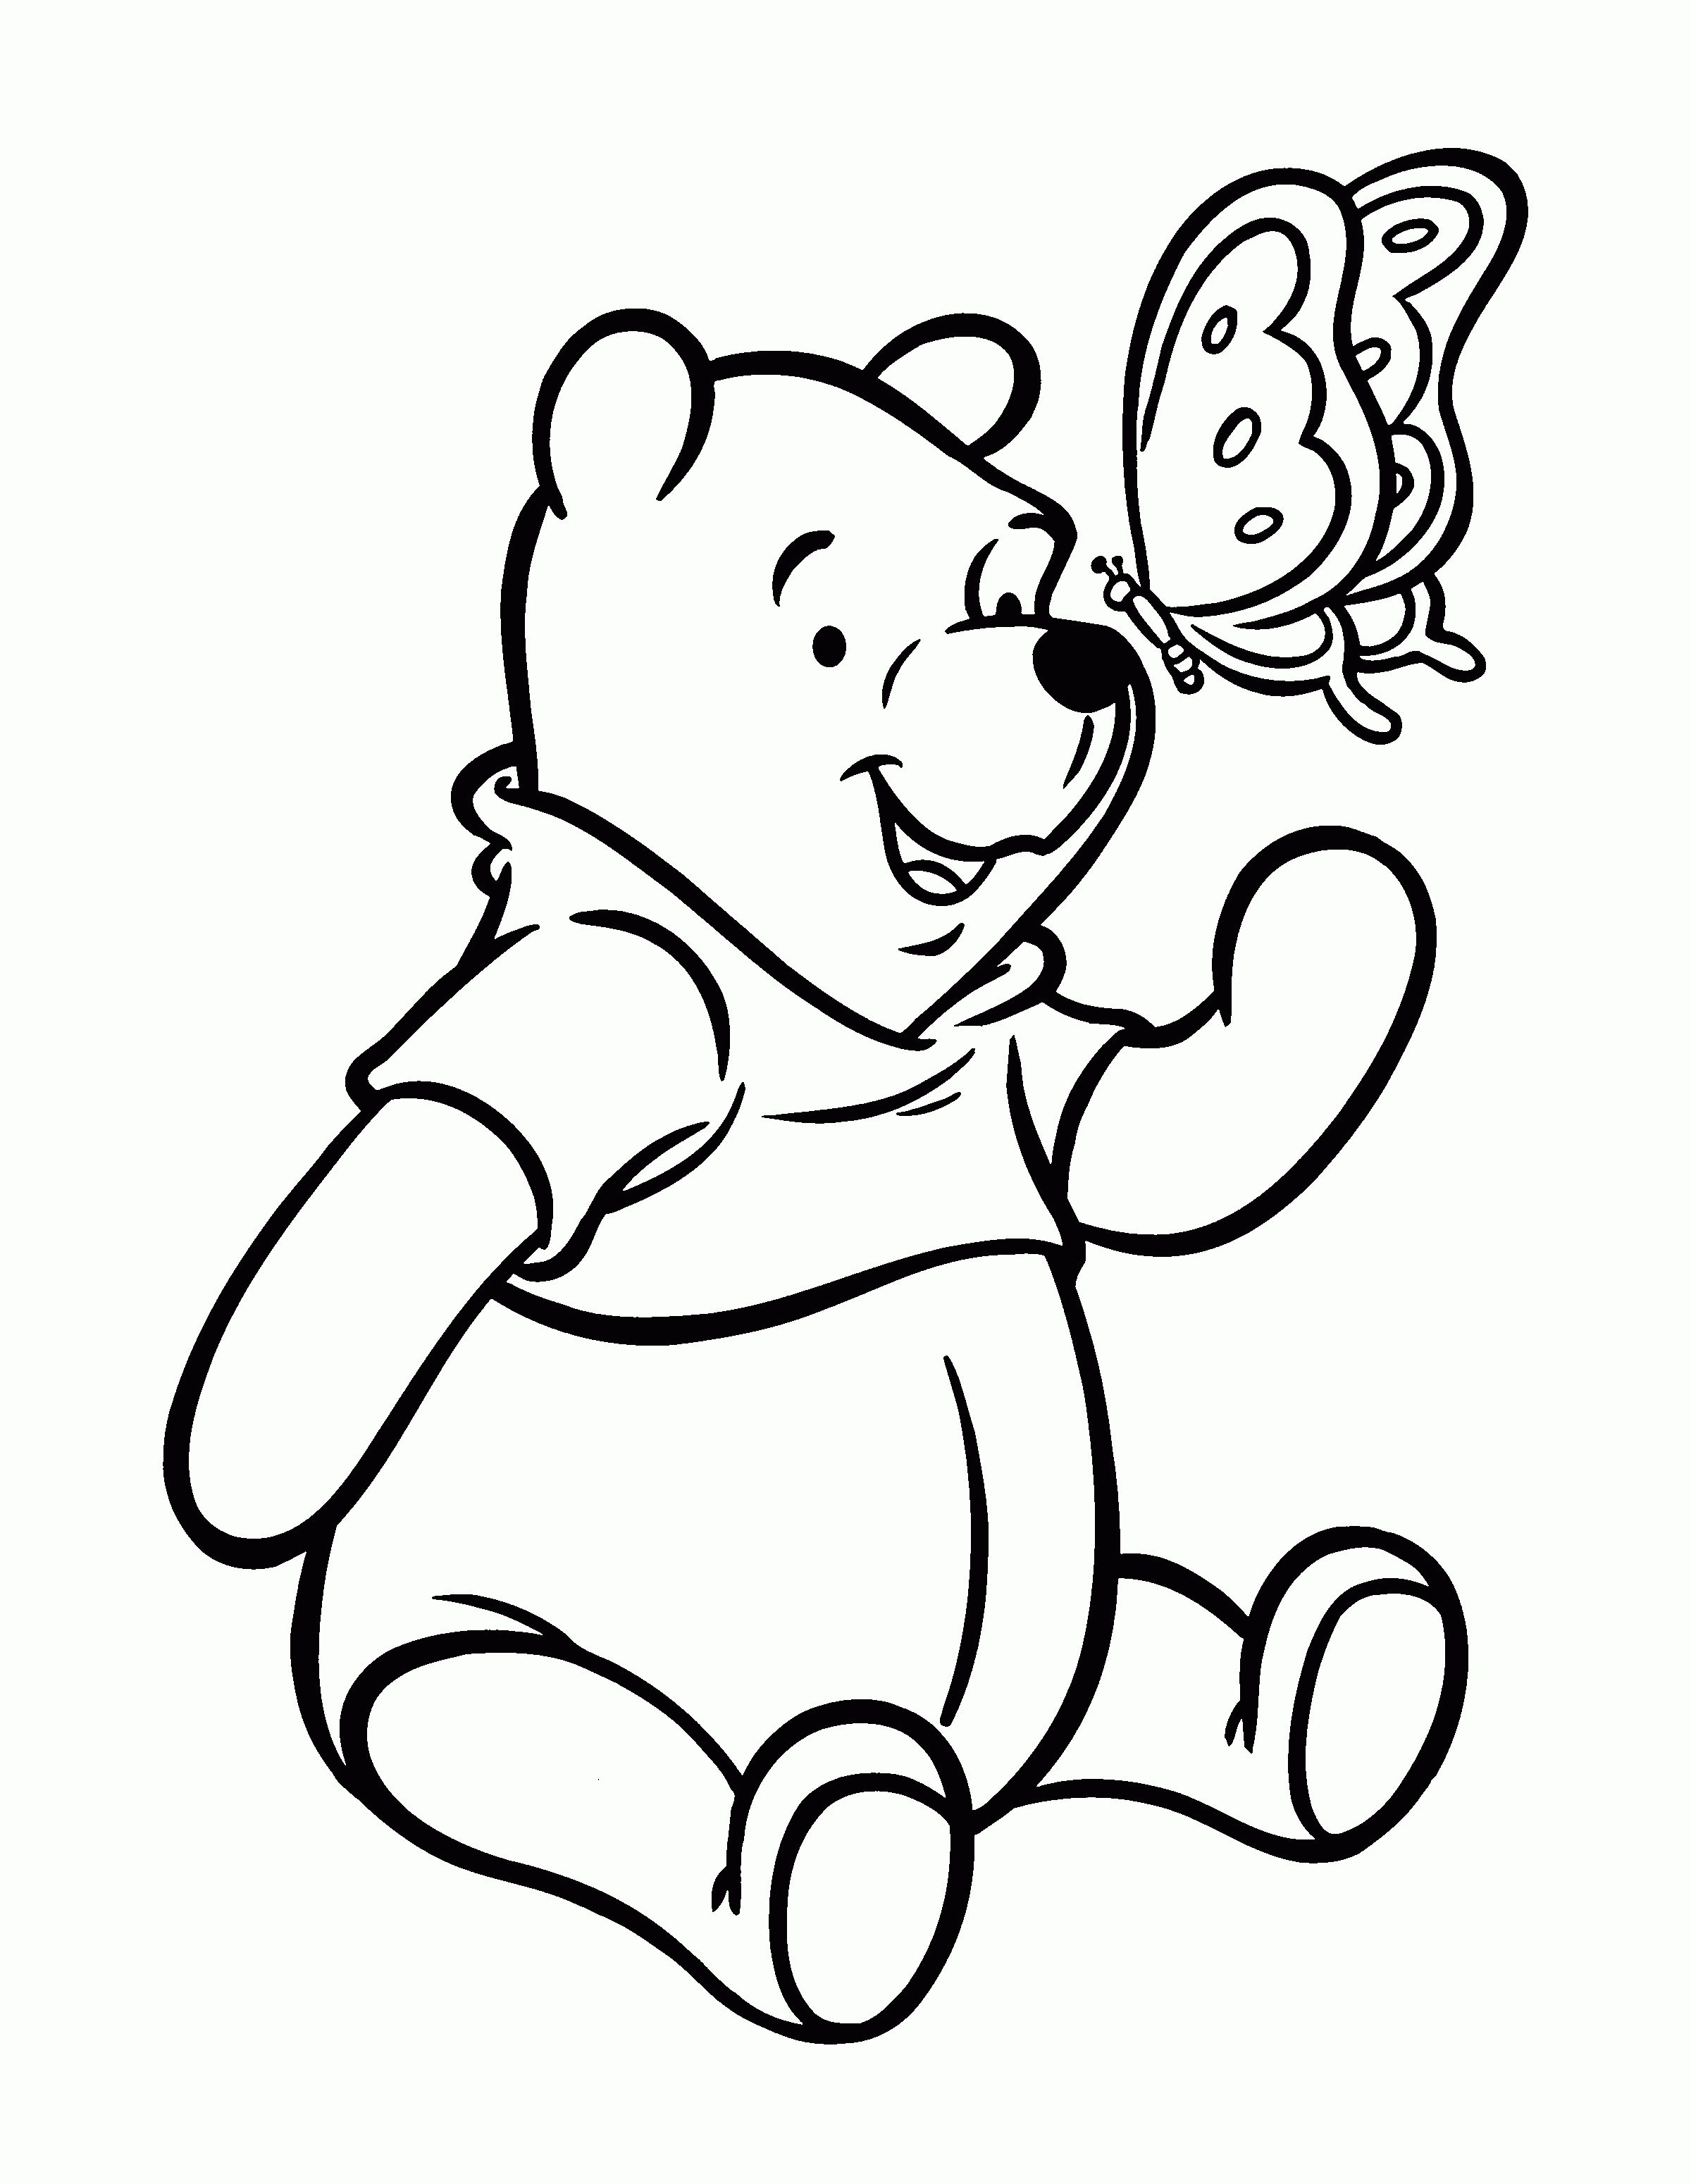 Childrens Coloring Pages Disney In 2020 Cartoon Coloring Pages